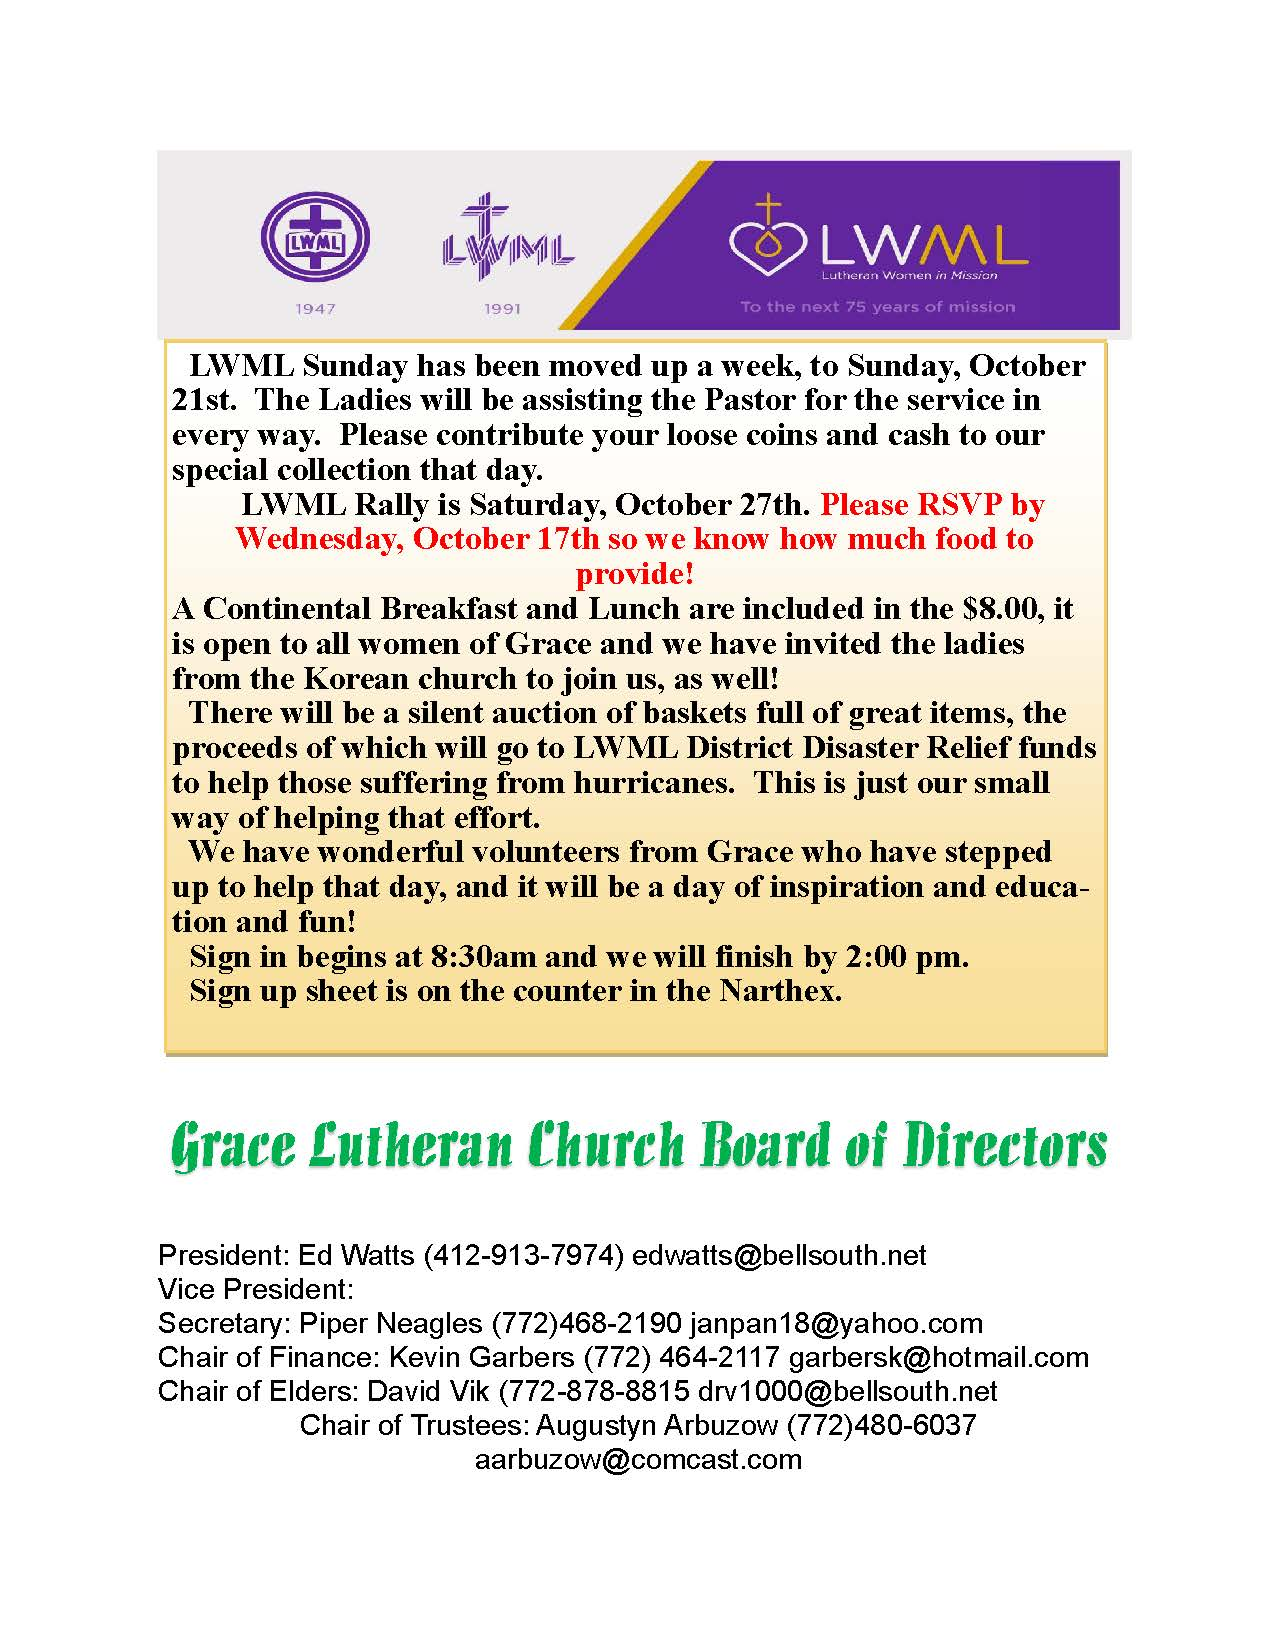 Grace News Ltr OCT 2018_Page_03.jpg